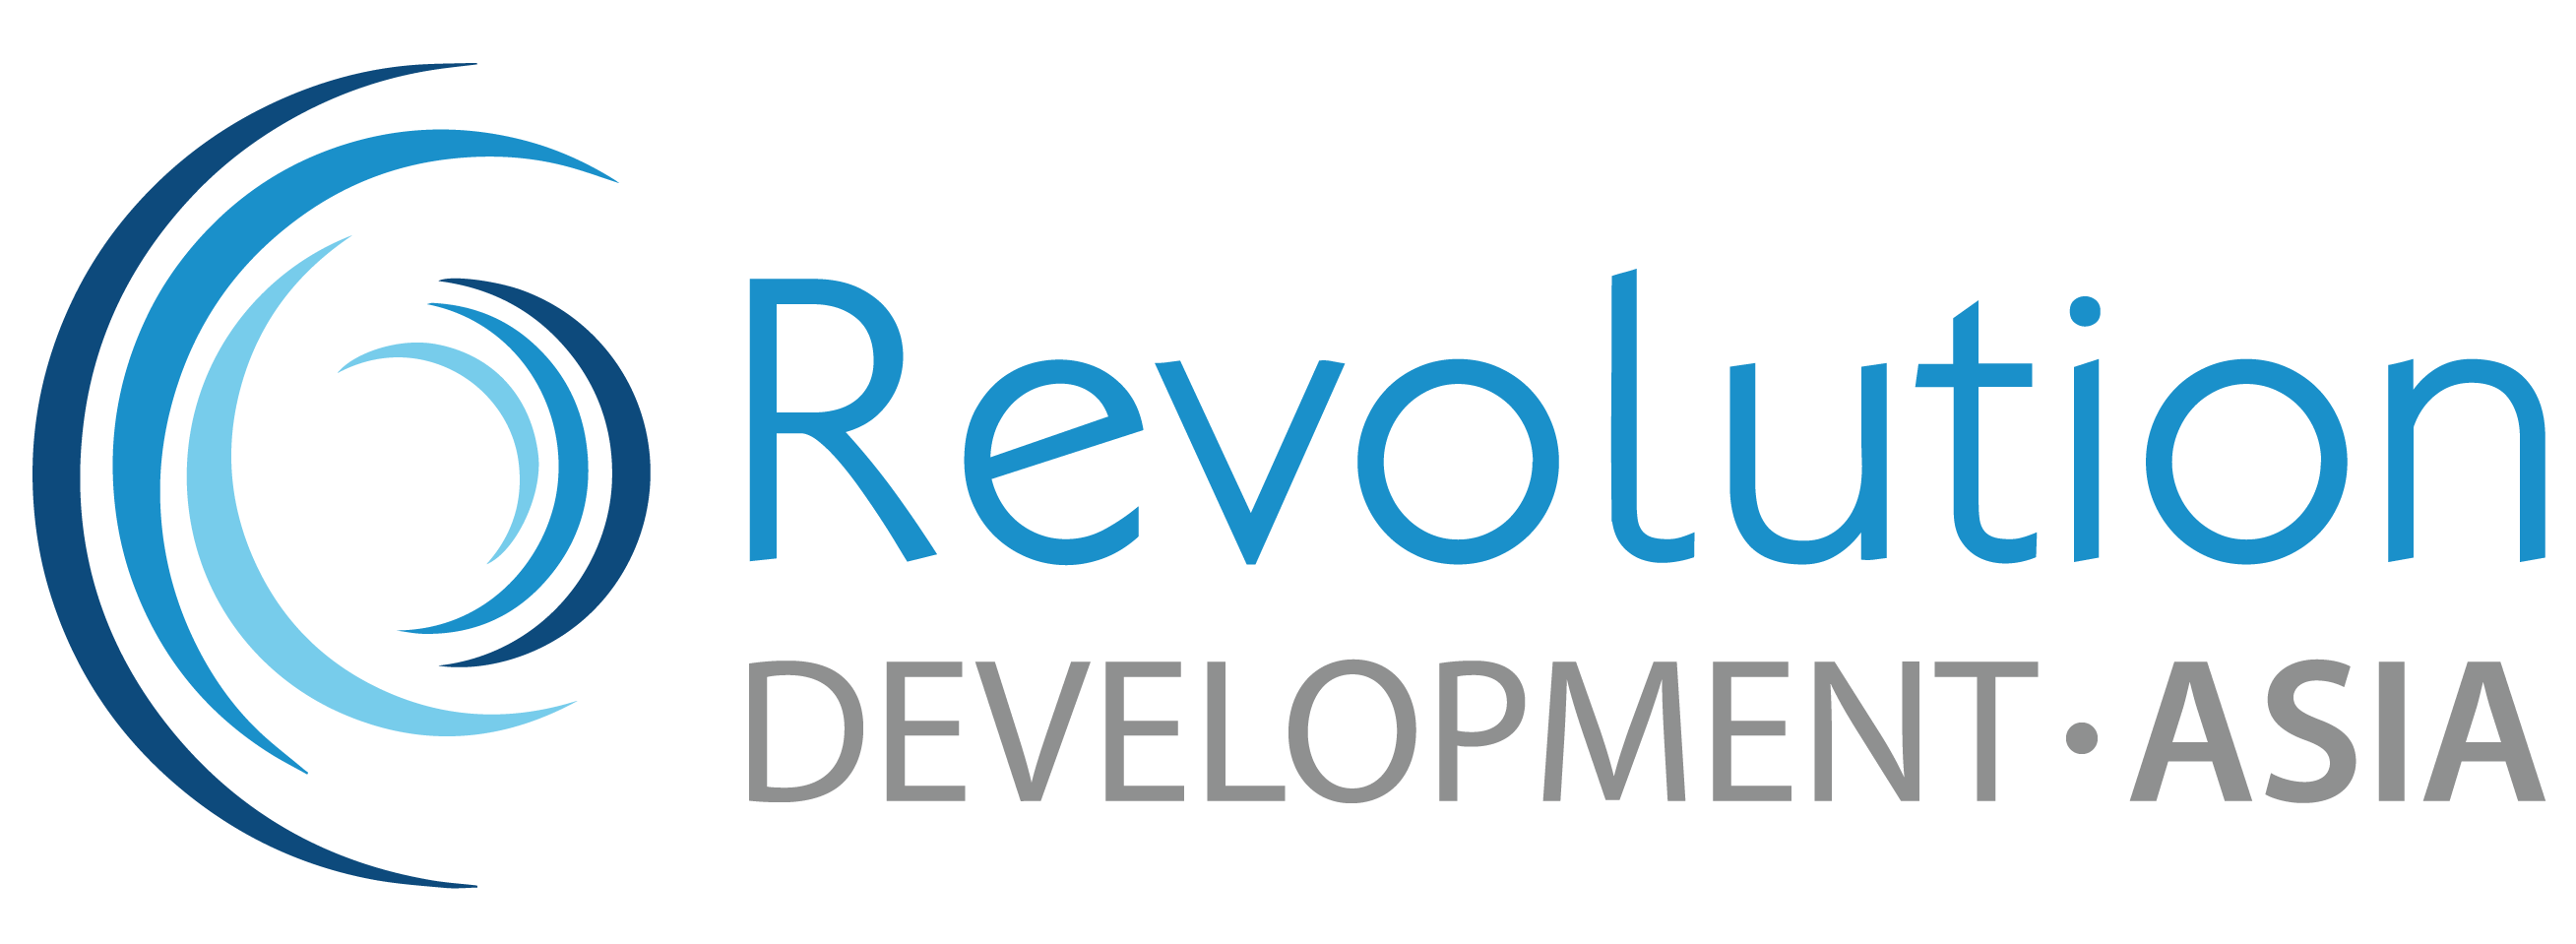 Revolution Development Asia Logo